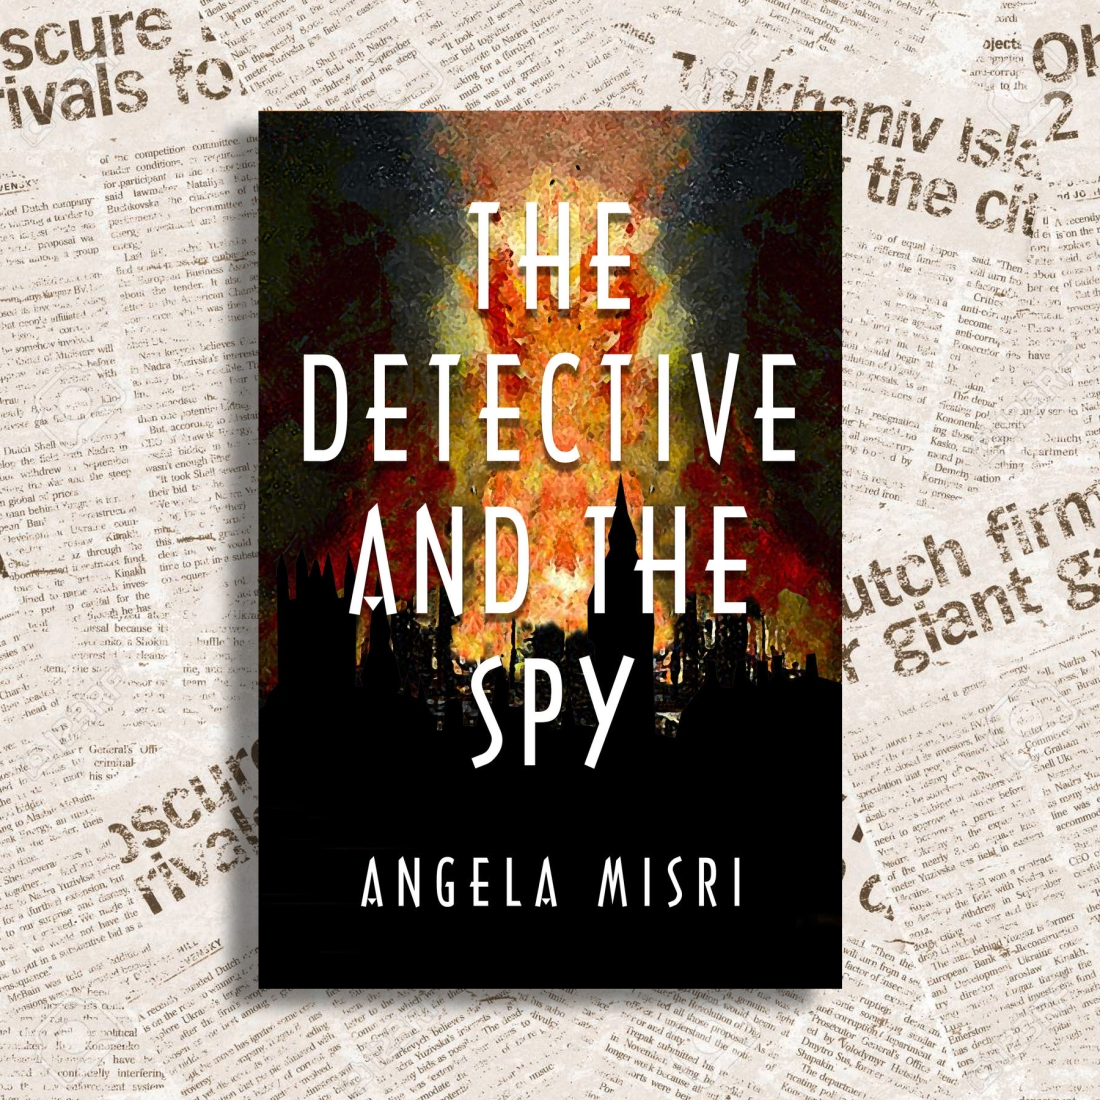 Detective-and-the-Spy-NEWSBG